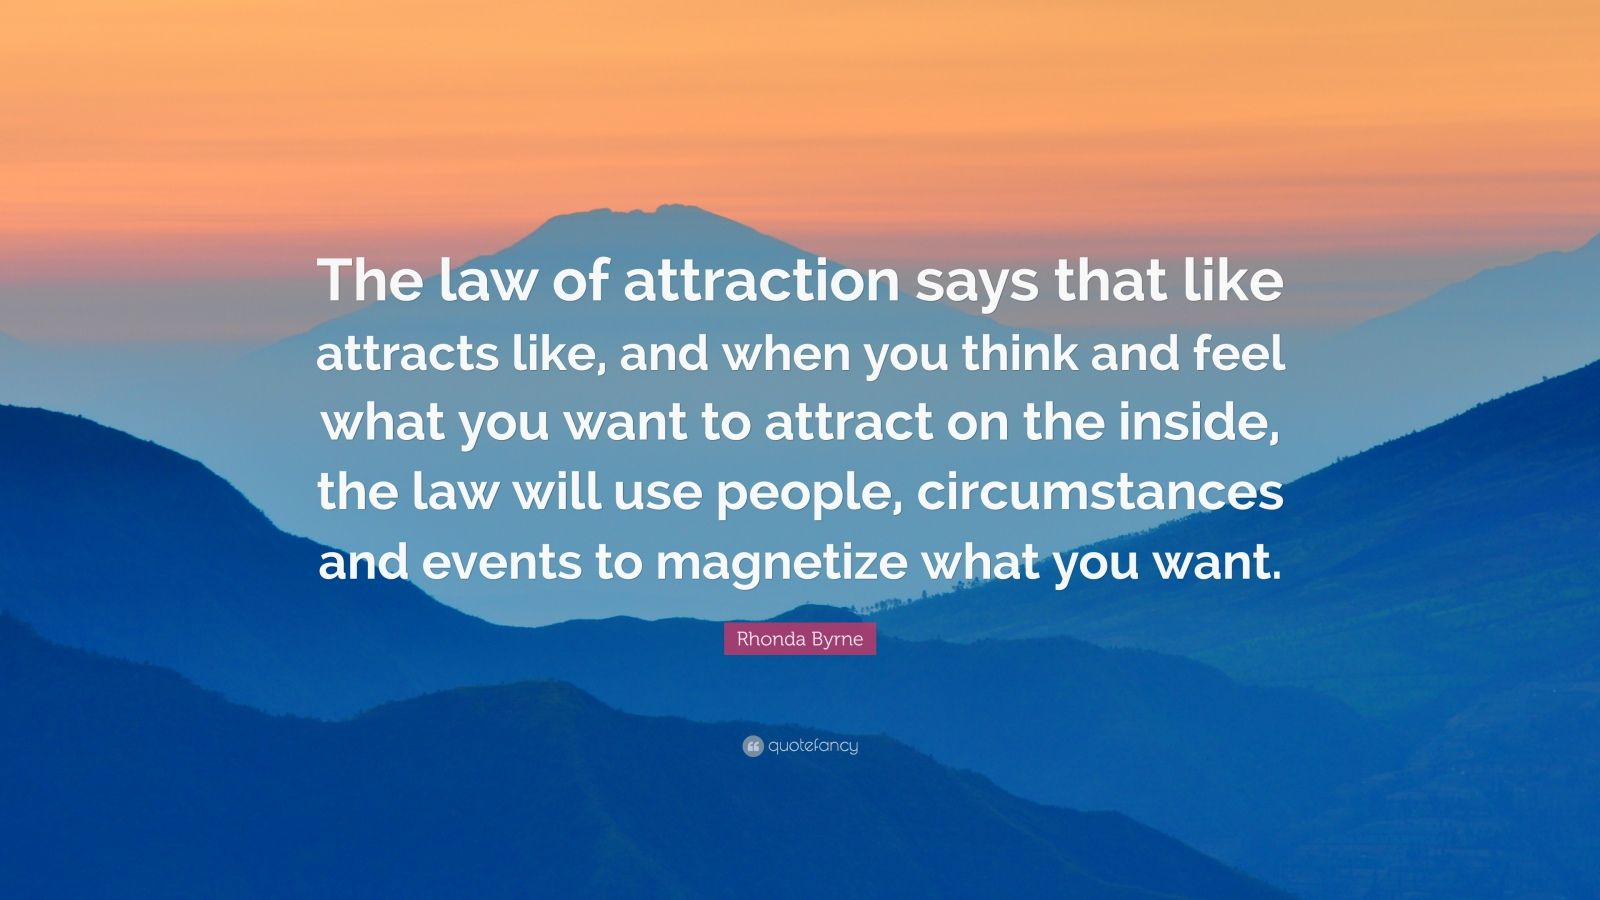 Conor Mcgregor Quote Wallpaper Rhonda Byrne Quote The Law Of Attraction Says That Like